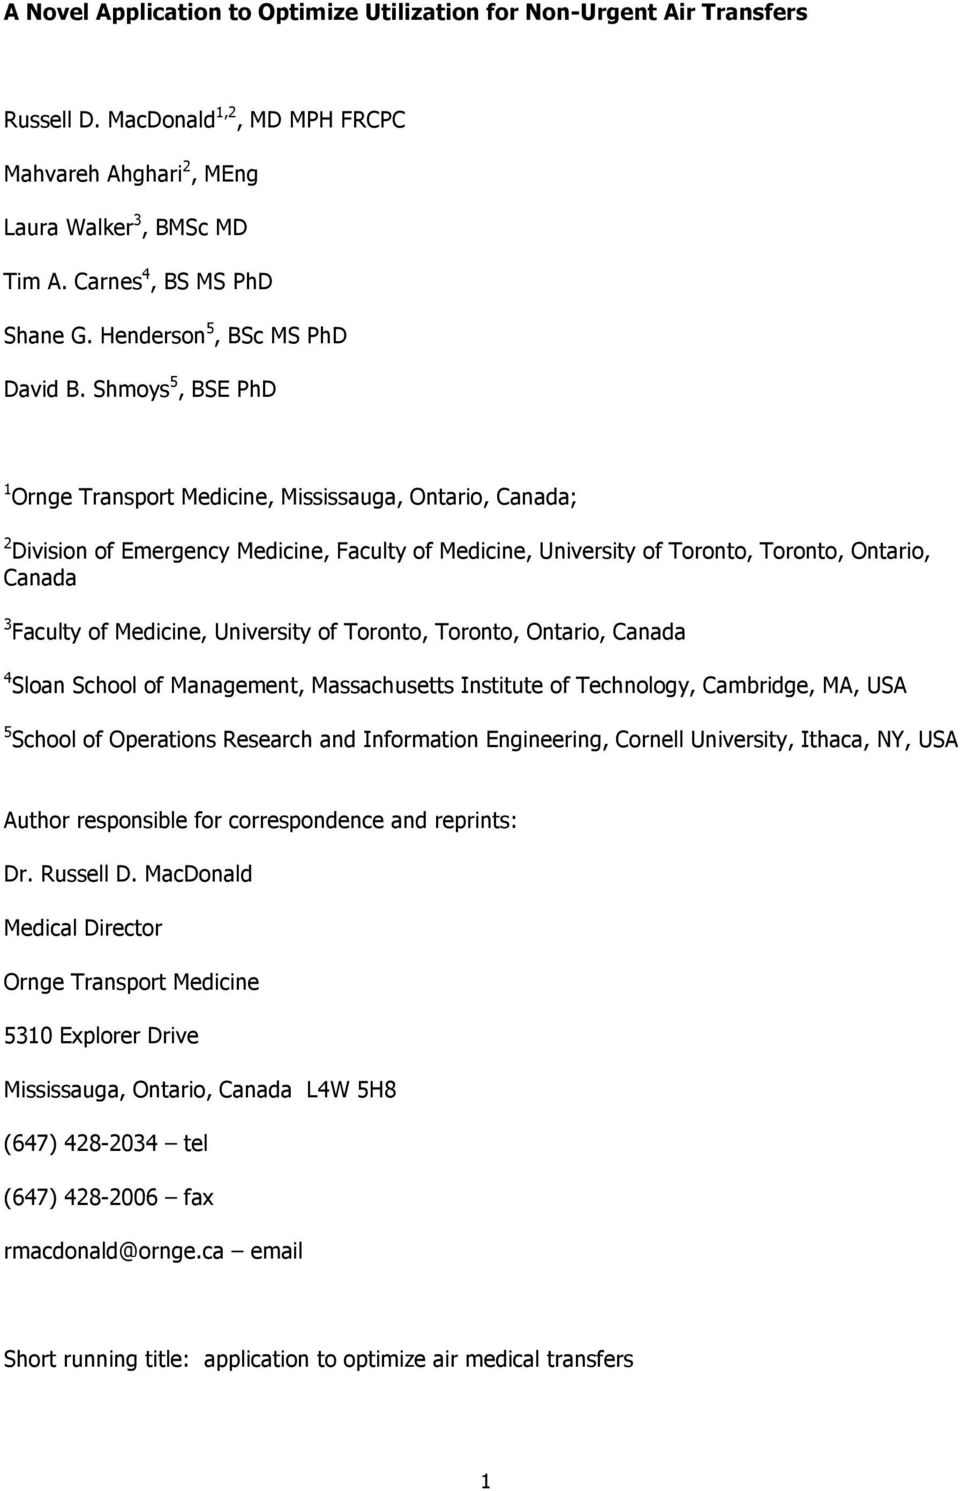 Shmoys 5, BSE PhD 1 Ornge Transport Medicine, Mississauga, Ontario, Canada; 2 Division of Emergency Medicine, Faculty of Medicine, University of Toronto, Toronto, Ontario, Canada 3 Faculty of